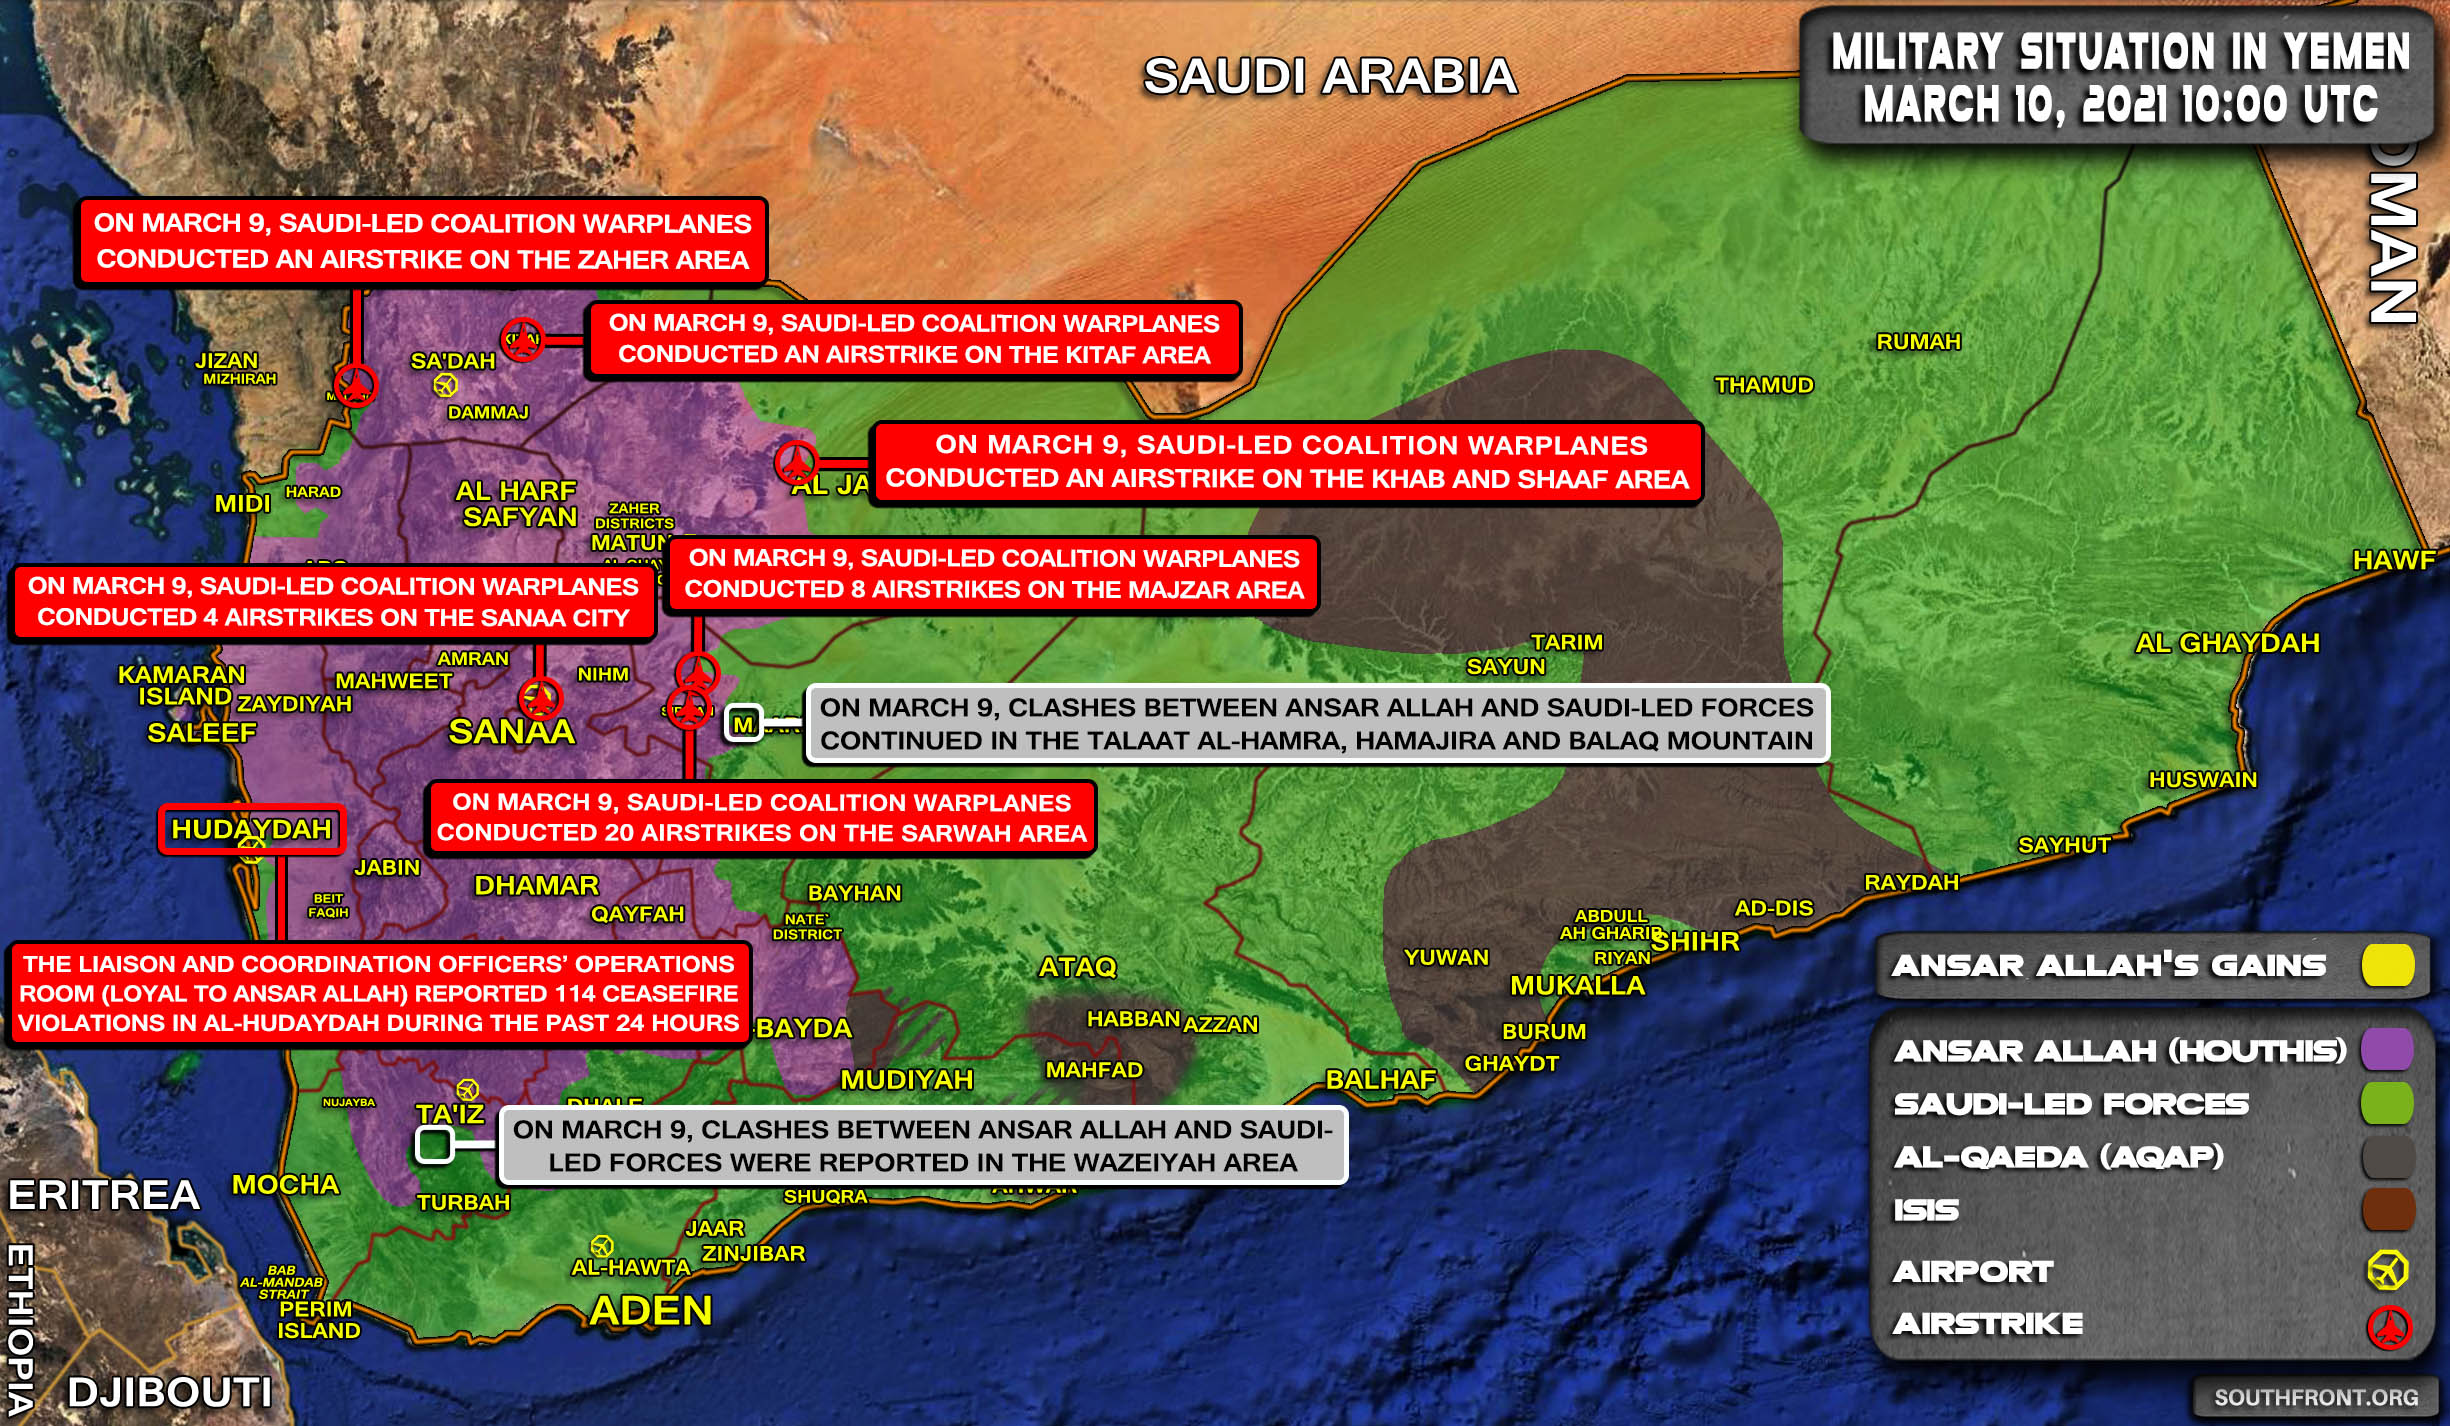 Military Situation In Yemen On March 10, 2021 (Map Update)